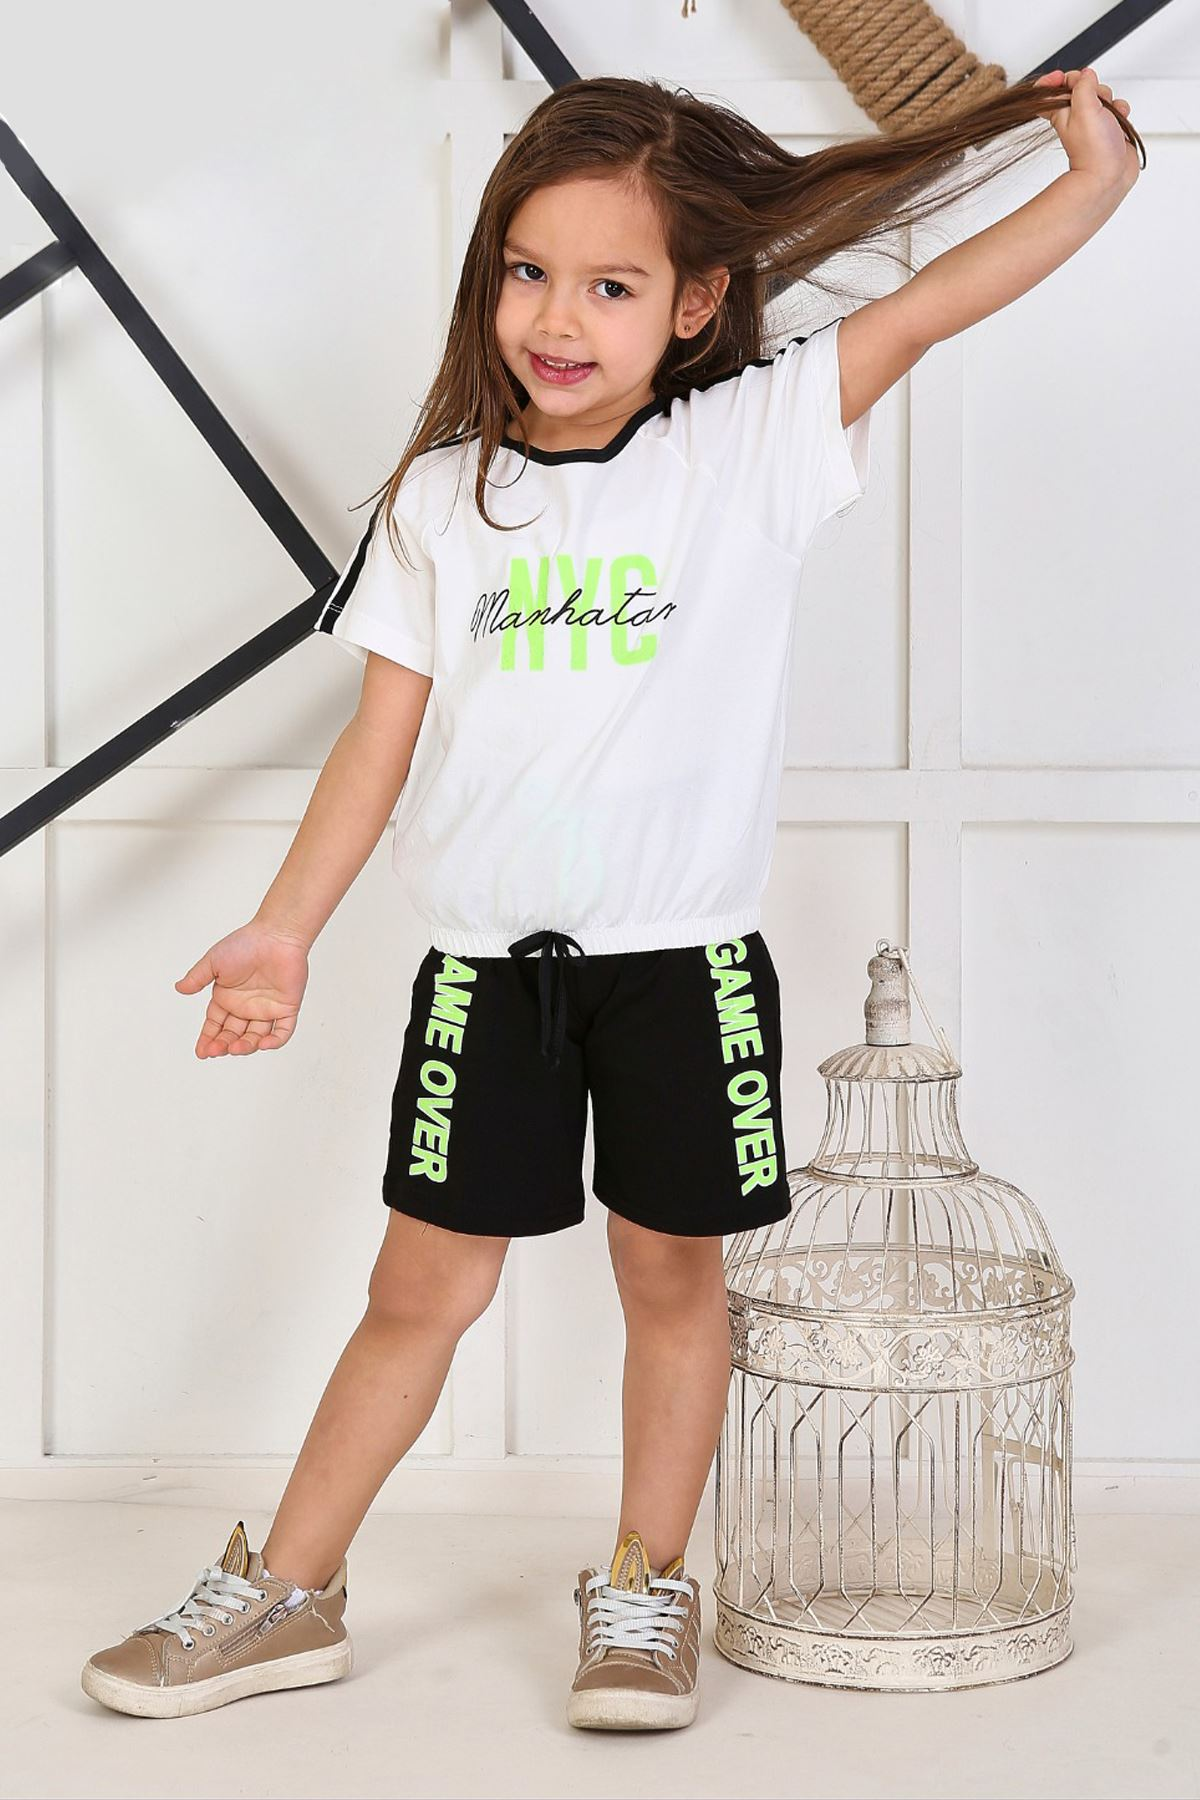 White Girl Child Summer Shorts Set 2 Piece Shorts T-shirt Daily Casual Holiday Kids Girls Children Cool Cotton outfits Clothing